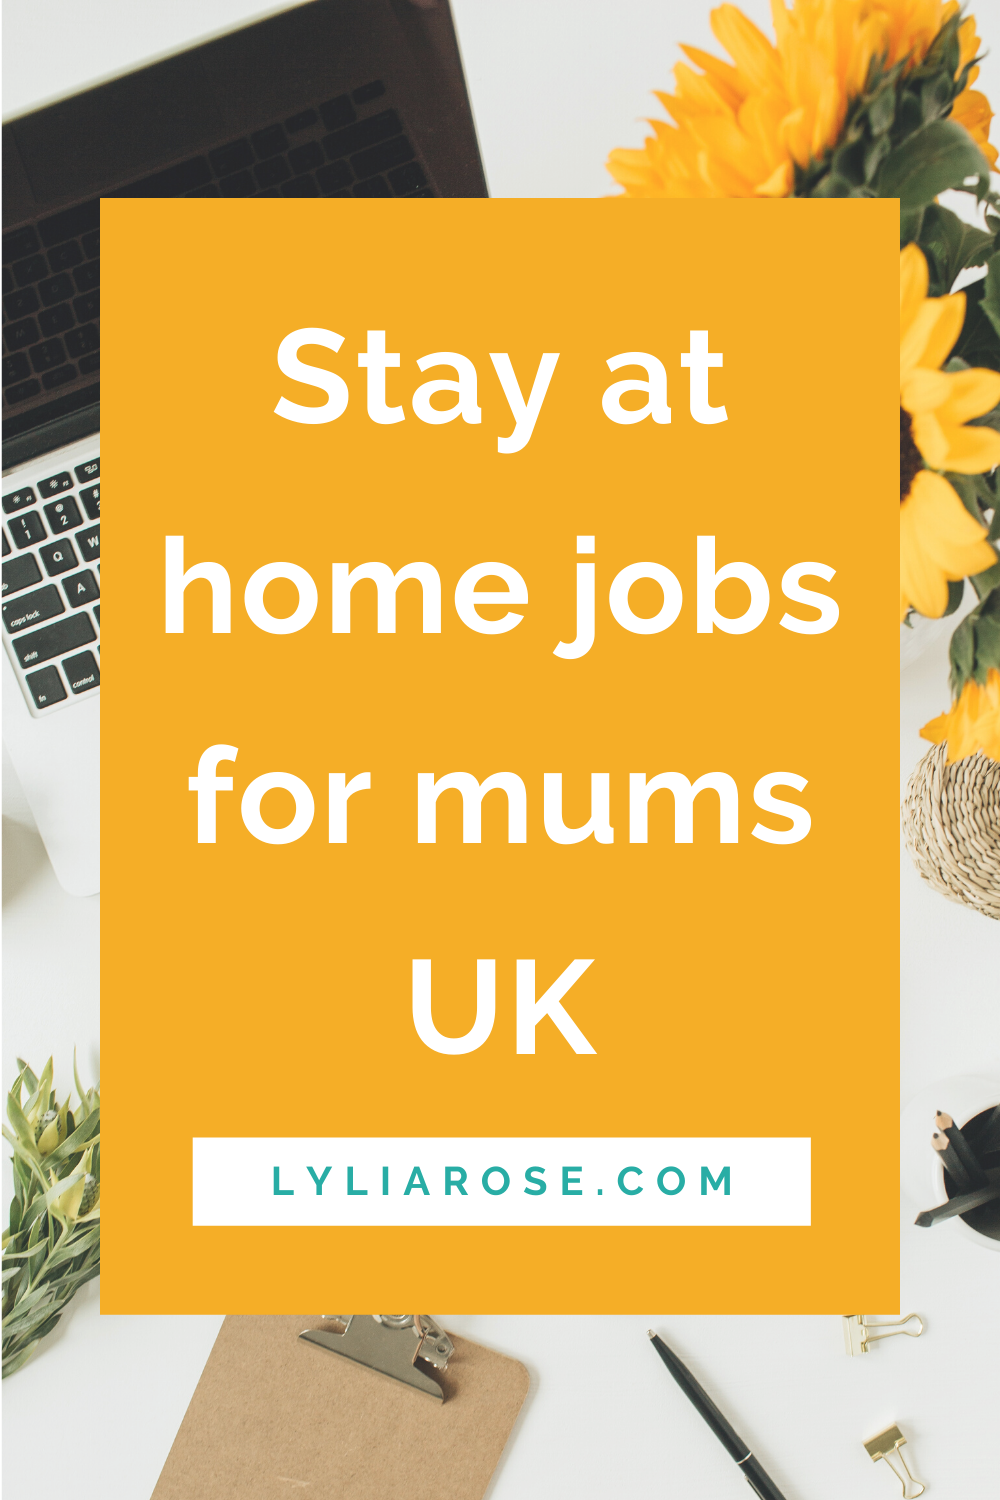 Stay at home jobs for mums UK